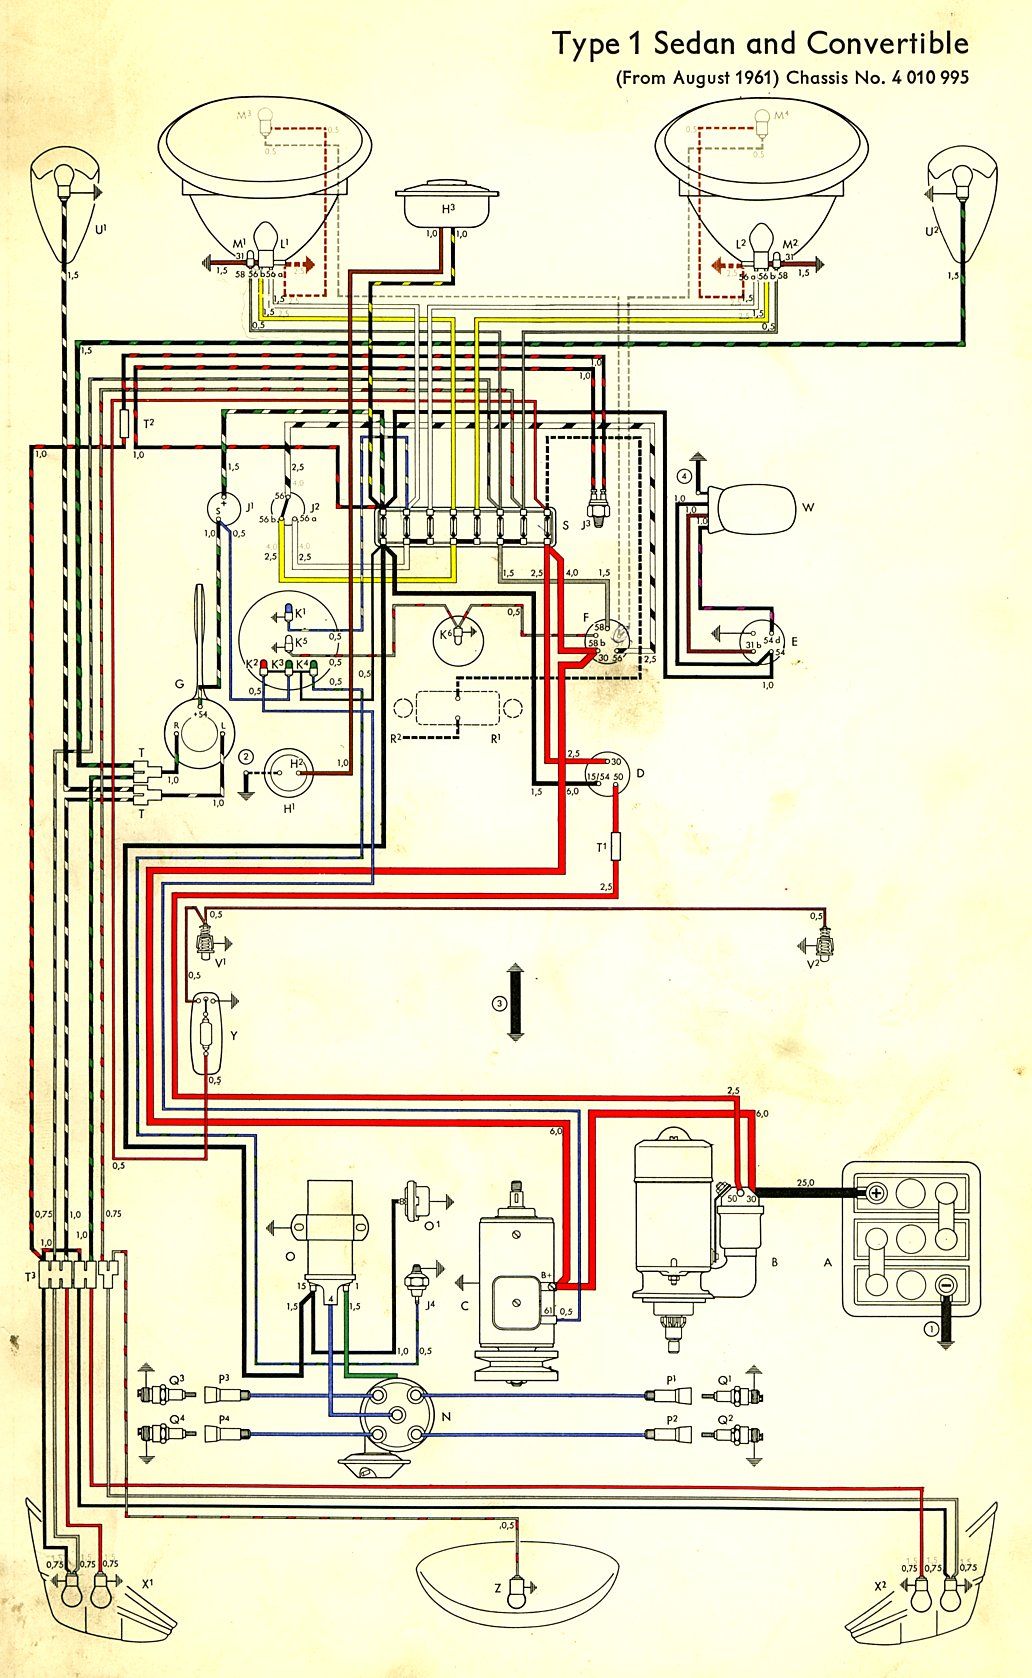 bug_62 1962 beetle wiring diagram thegoldenbug com 1965 vw beetle wiring diagram at nearapp.co